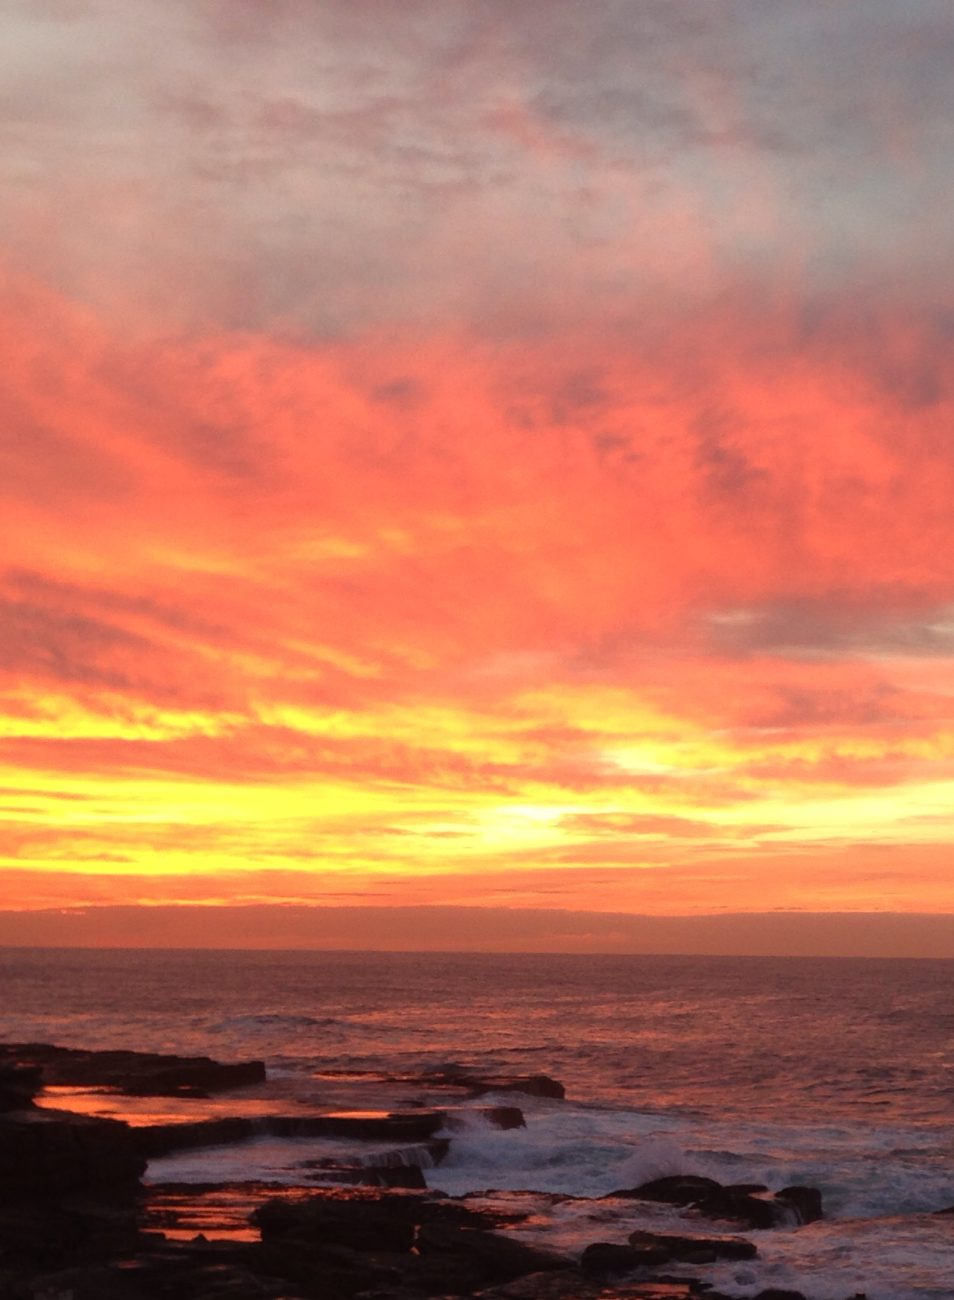 Dawn at Maroubra